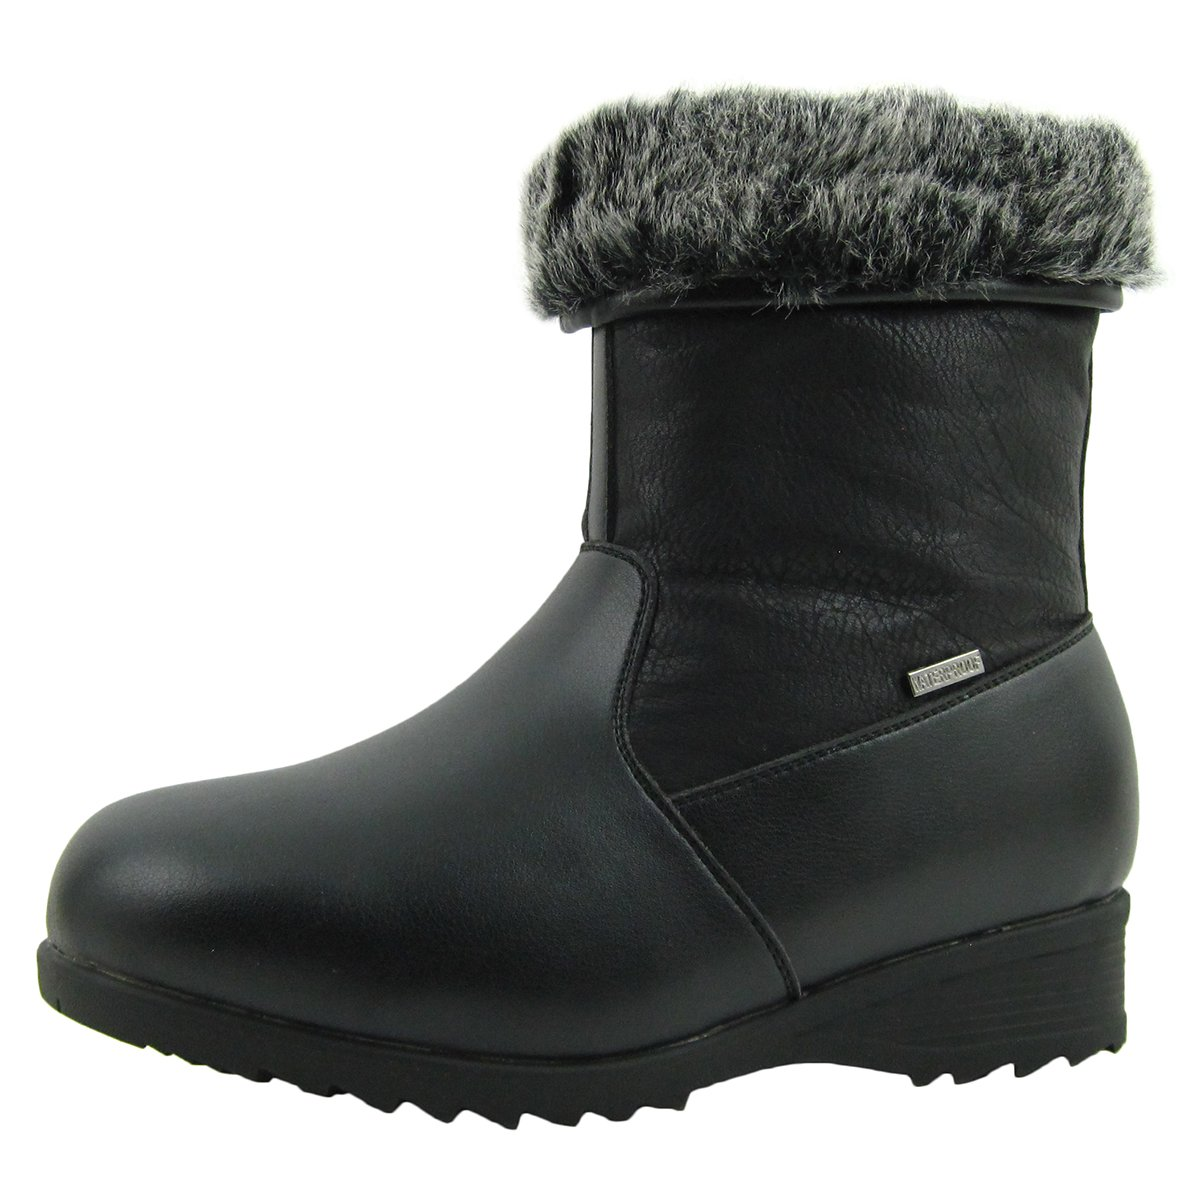 Comfy Moda Women's Winter Snow Boots Alaska (8, Black)